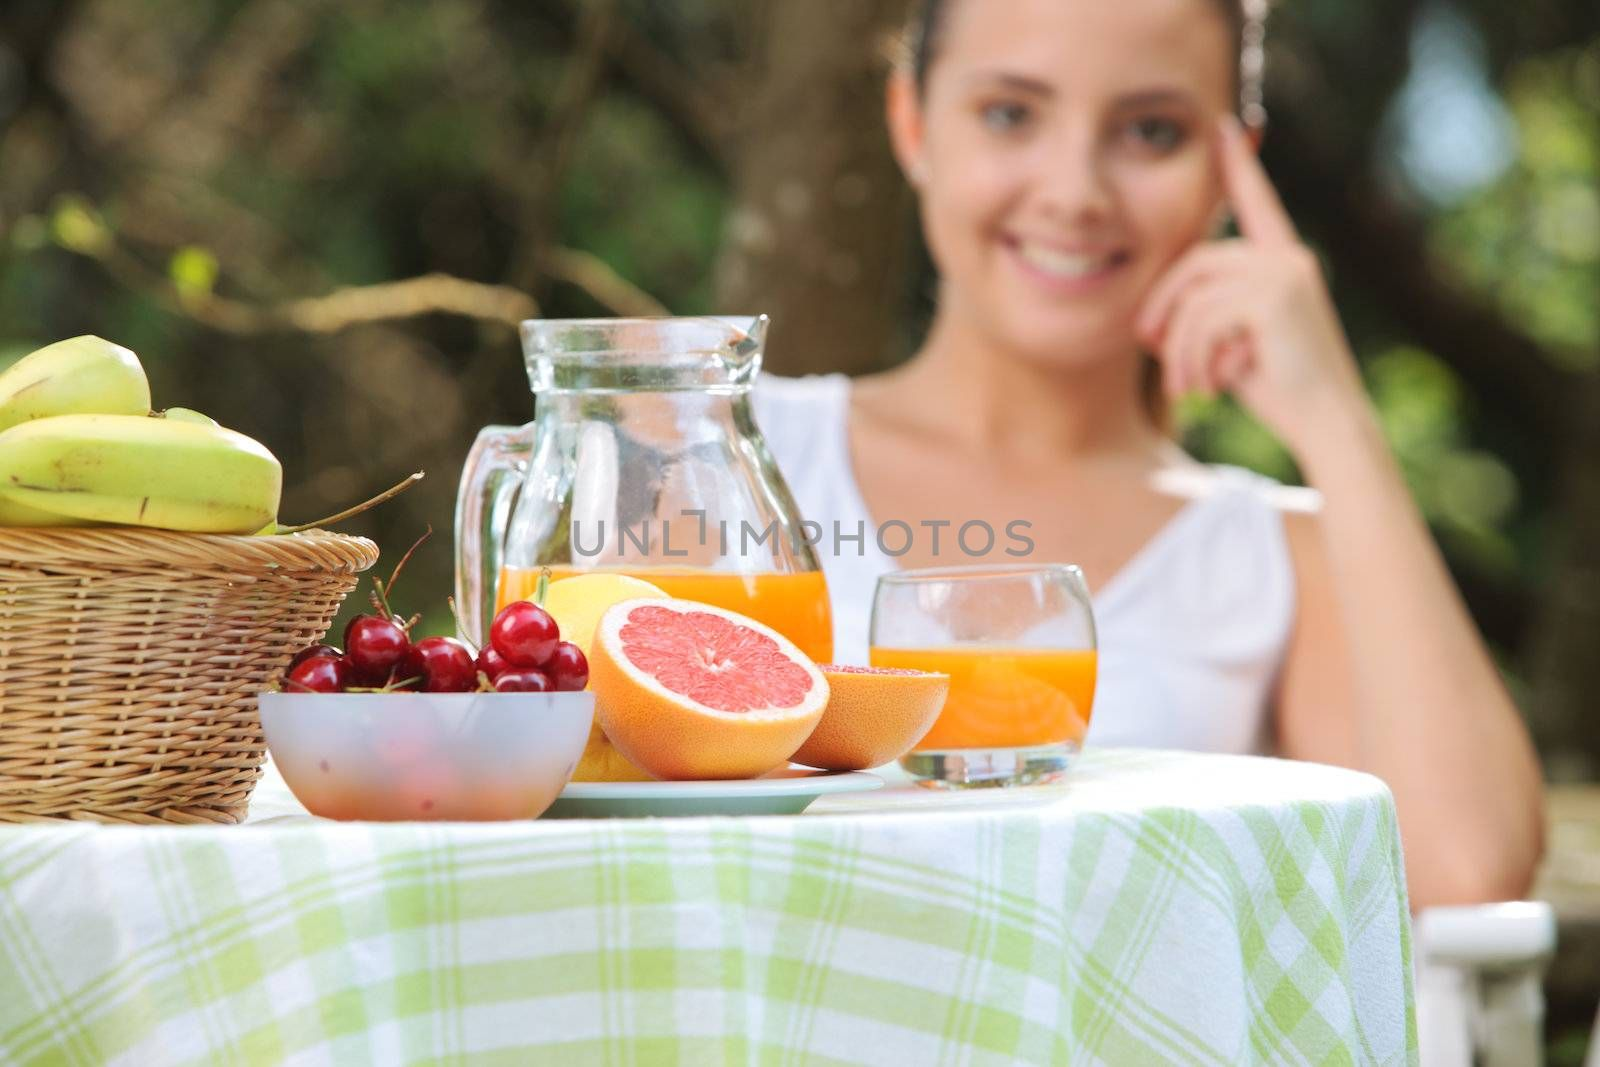 Table with fruit and orange juice, smiling woman on background